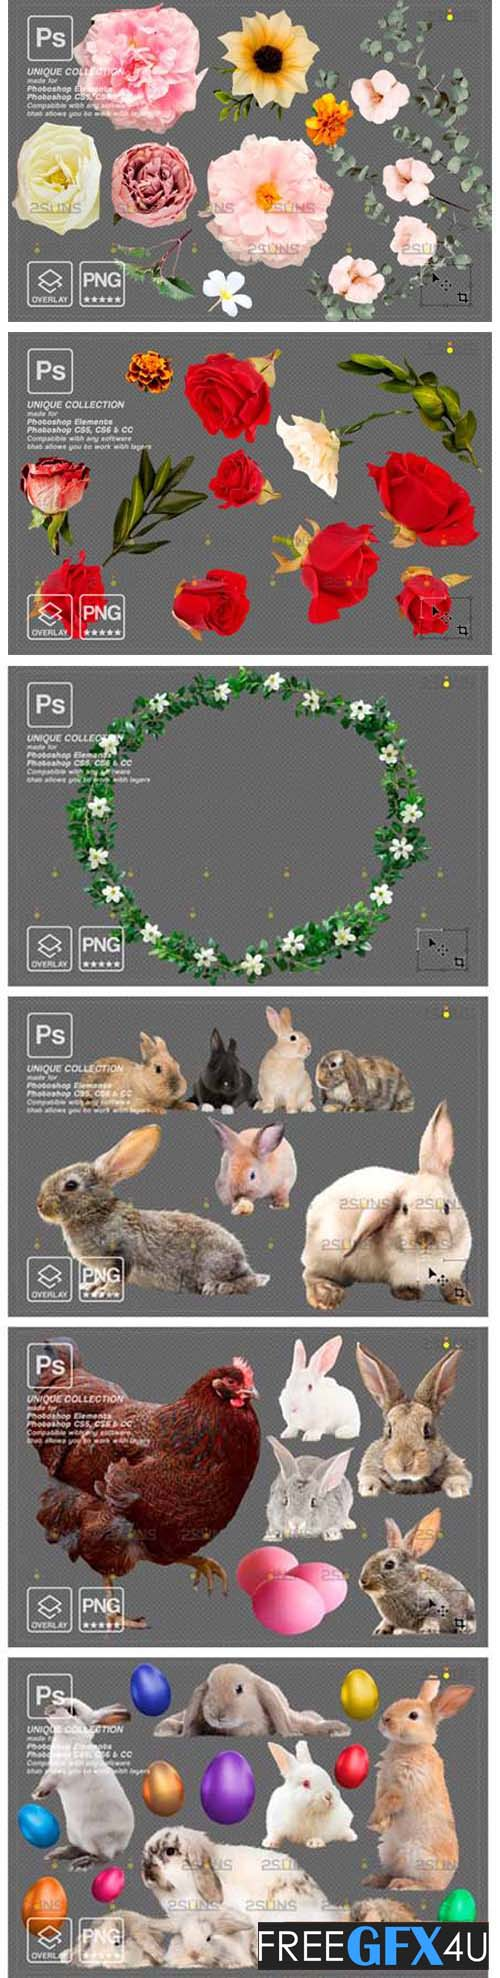 Easter Photoshop Png Bunny Overlay